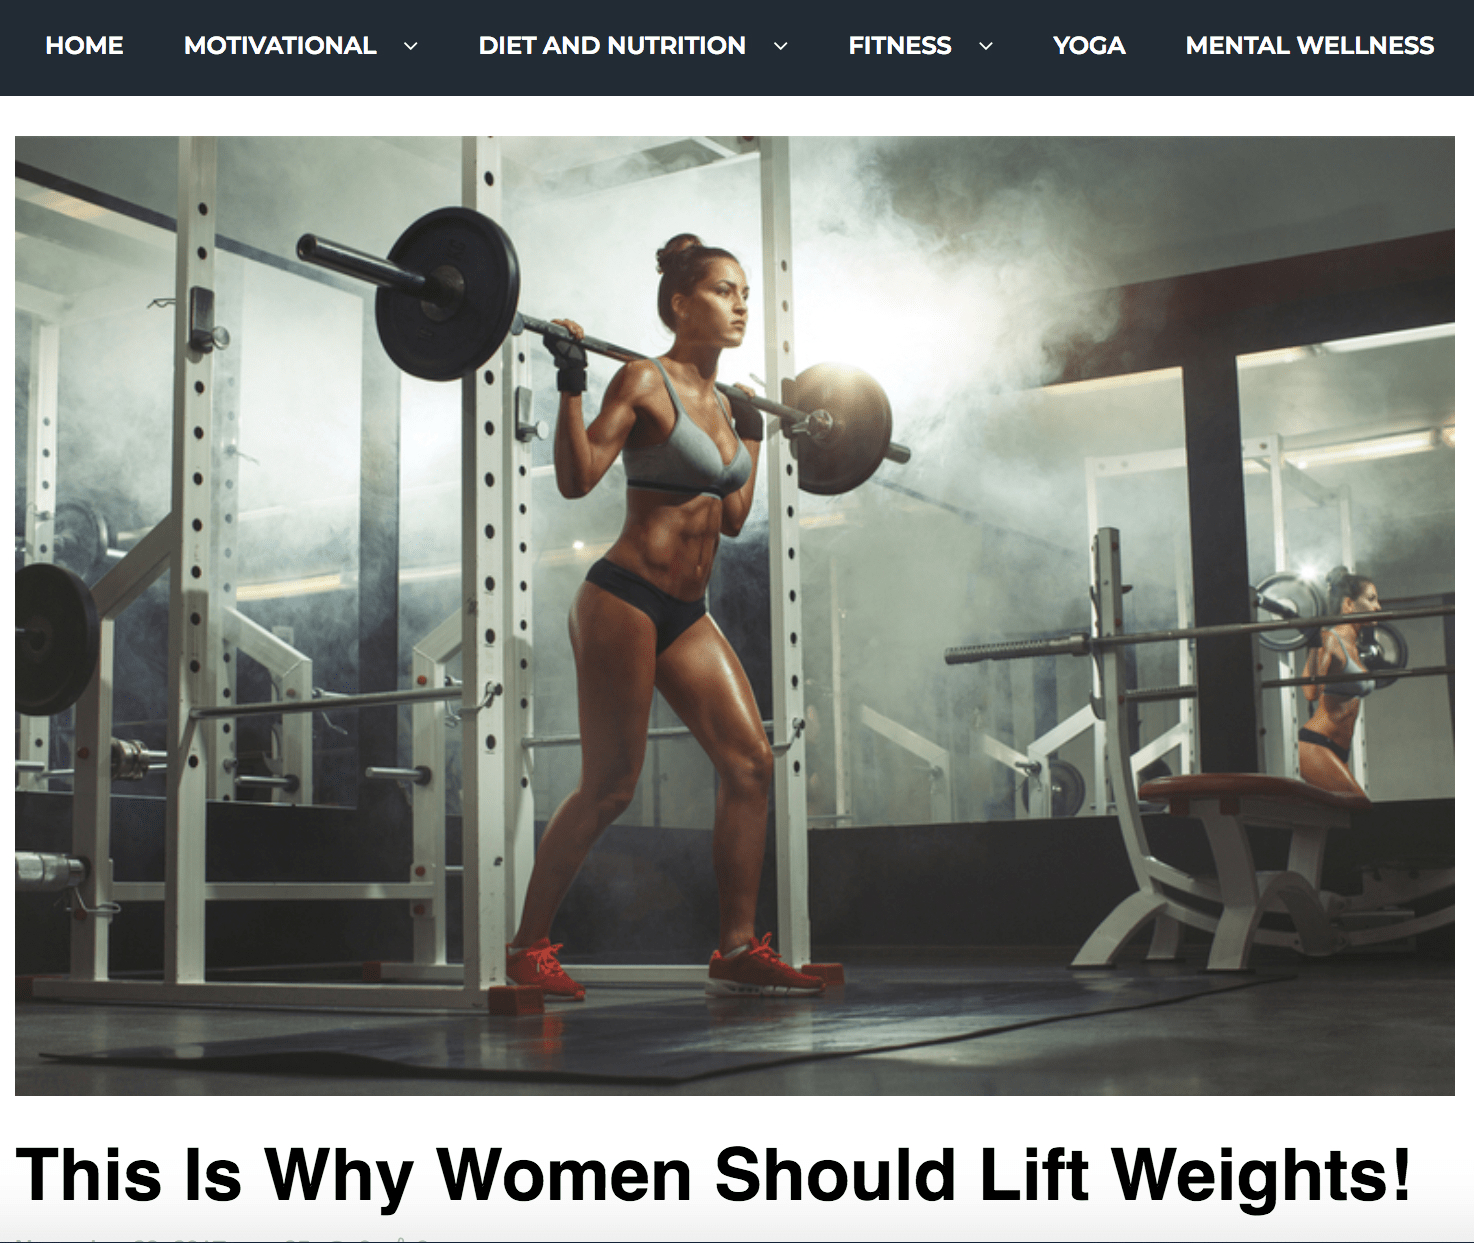 This Is Why Women Should Lift Weights